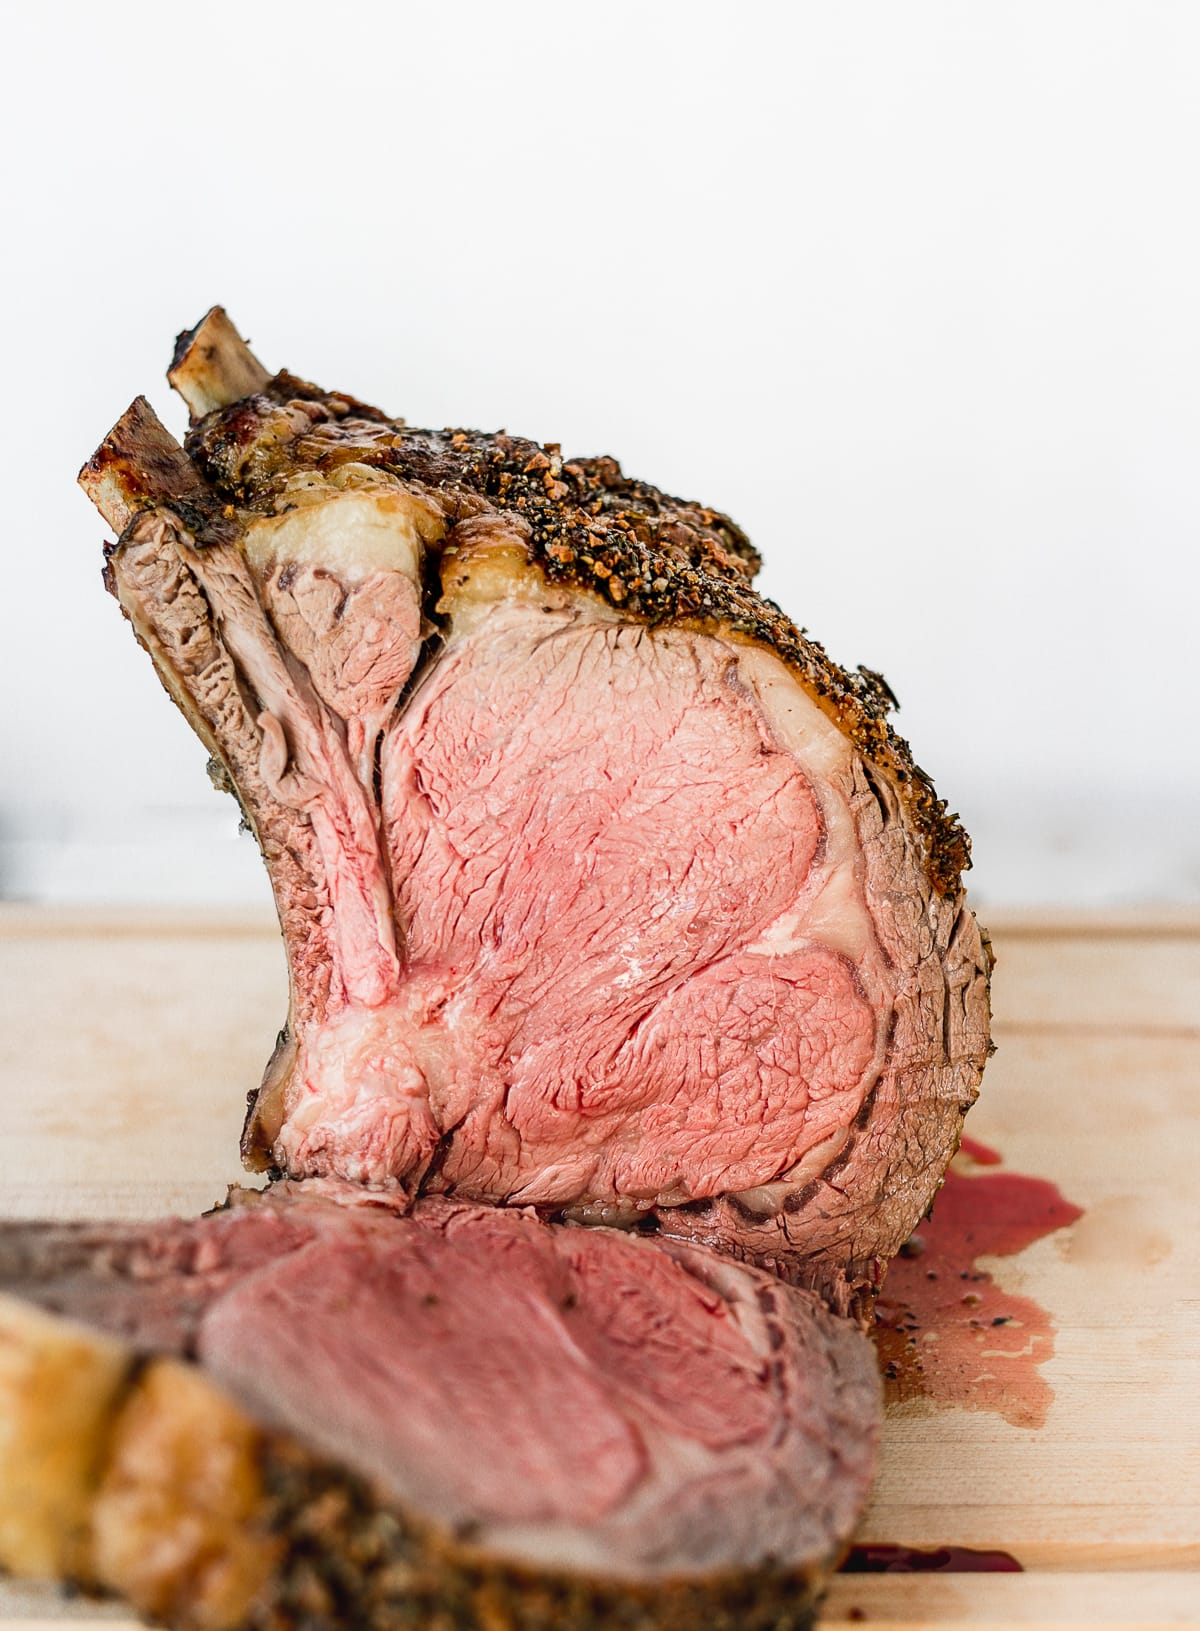 prime rib roast with a piece carved away on a cutting board.